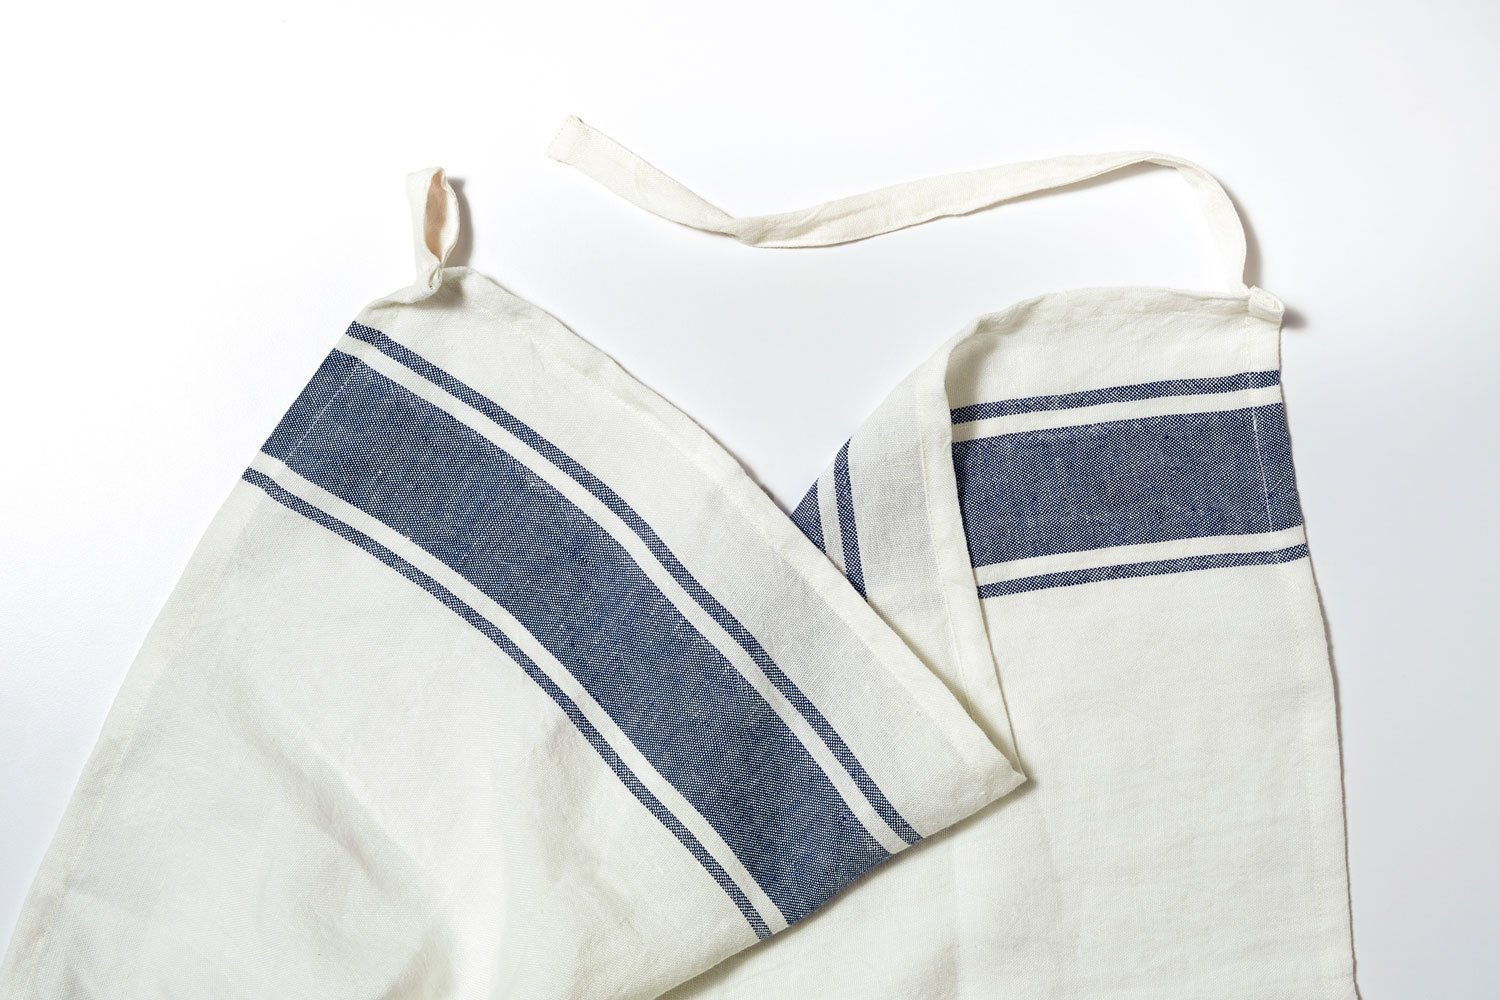 Chef's Towel from Snowe, $25 at snowehome.com  As handy for wiping up spills as tying around the waist as a half apron, this machine washable towel, spun from Belgian linen in Italy, will be a cook's best friend.  Editor's Picks: Classic Gifts for the Chef by Allie Weiss